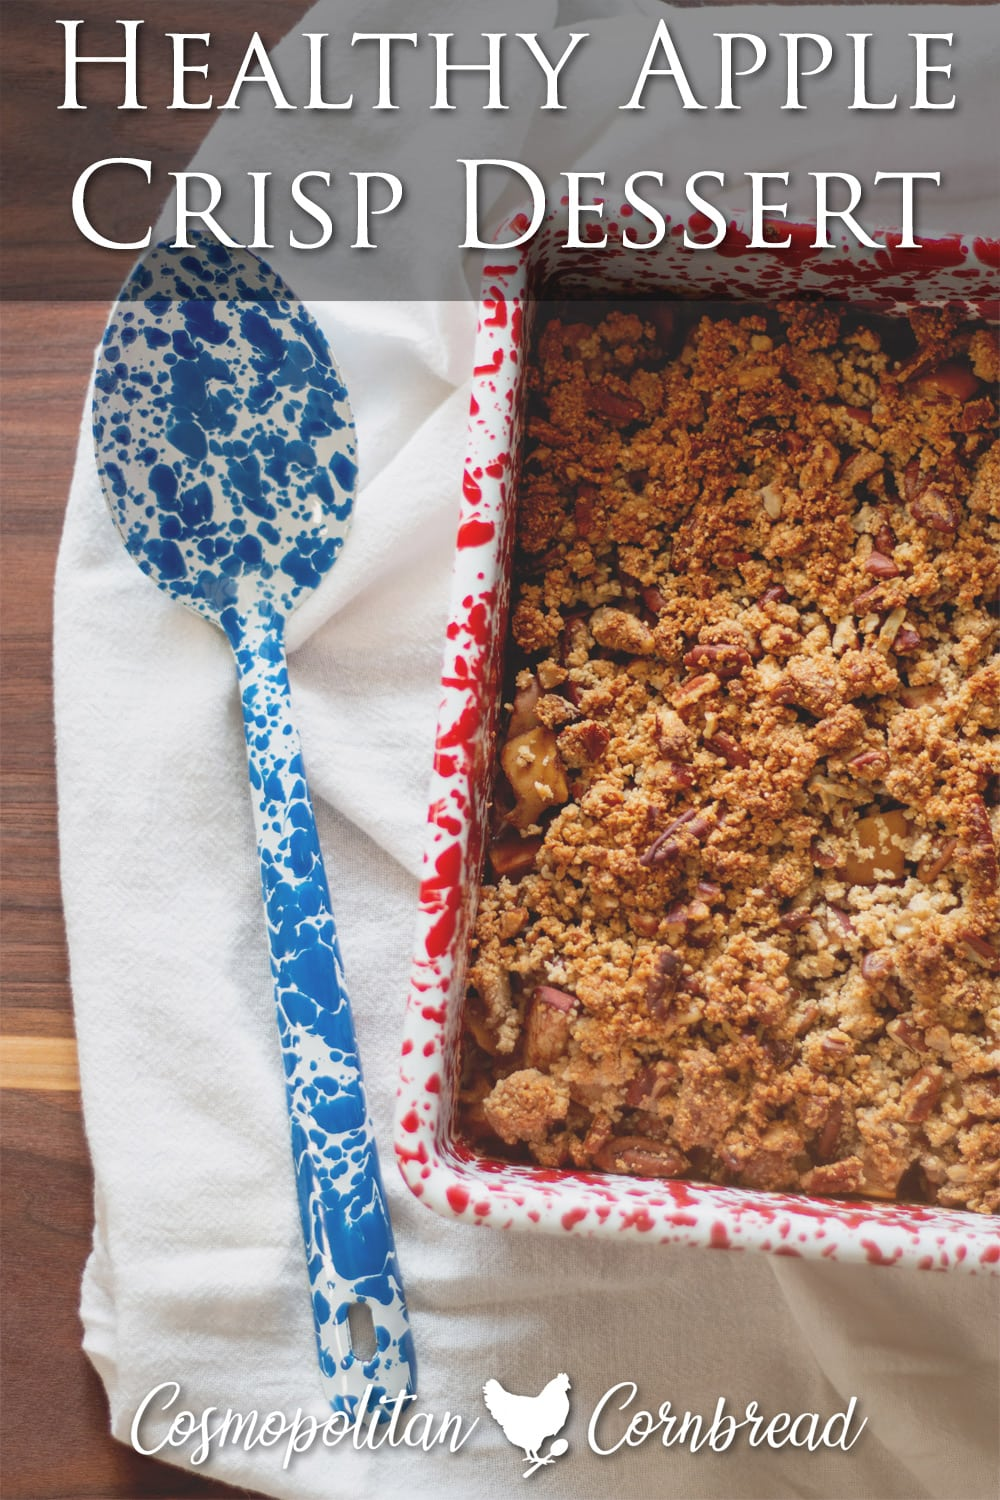 Warm and tasty seasoned baked apples with a crumb topping.